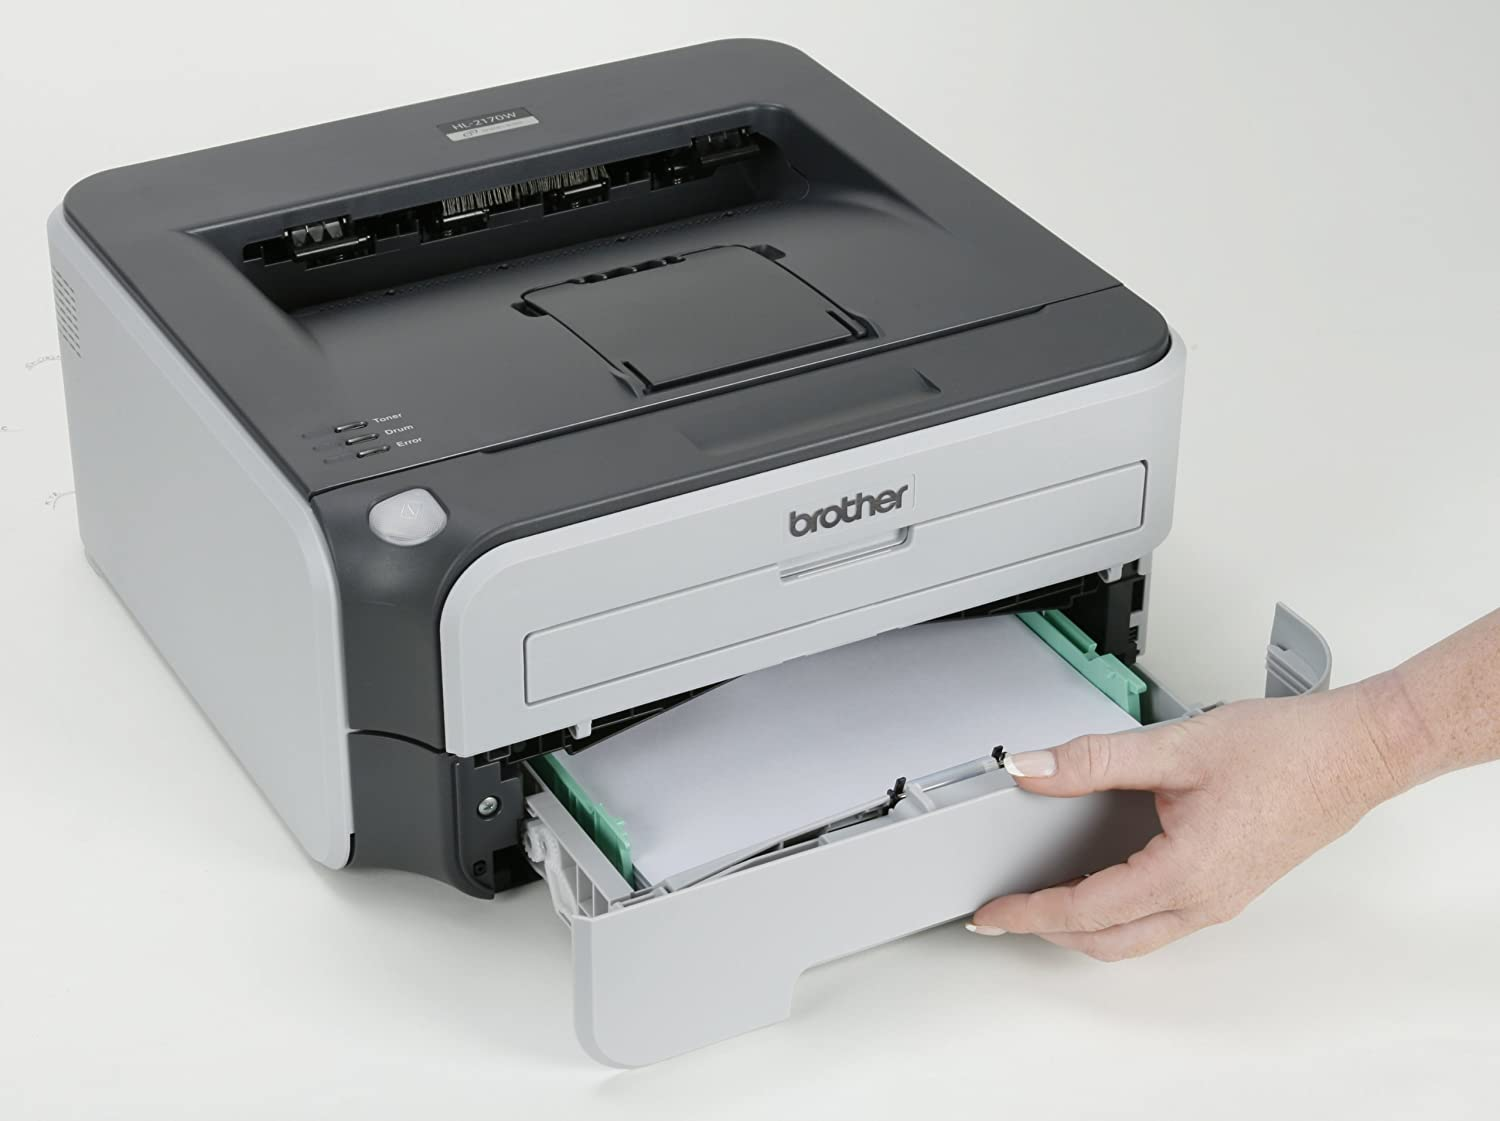 BROTHER HL2170W PRINTER WINDOWS DRIVER